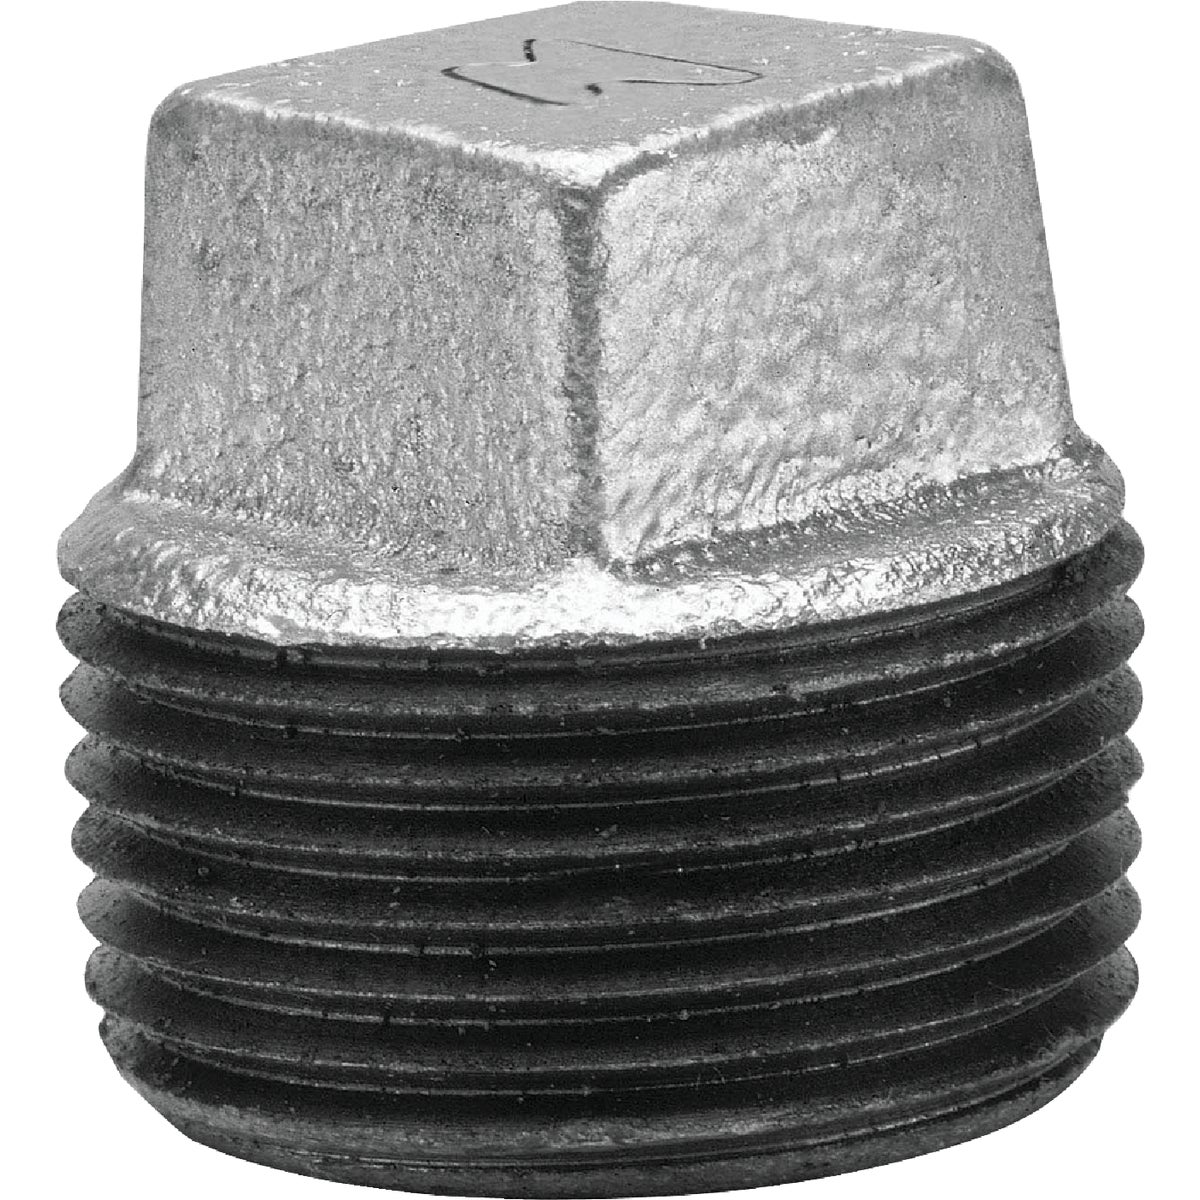 "2"" GALV SQ PLUG - 8700160107 by Anvil International"